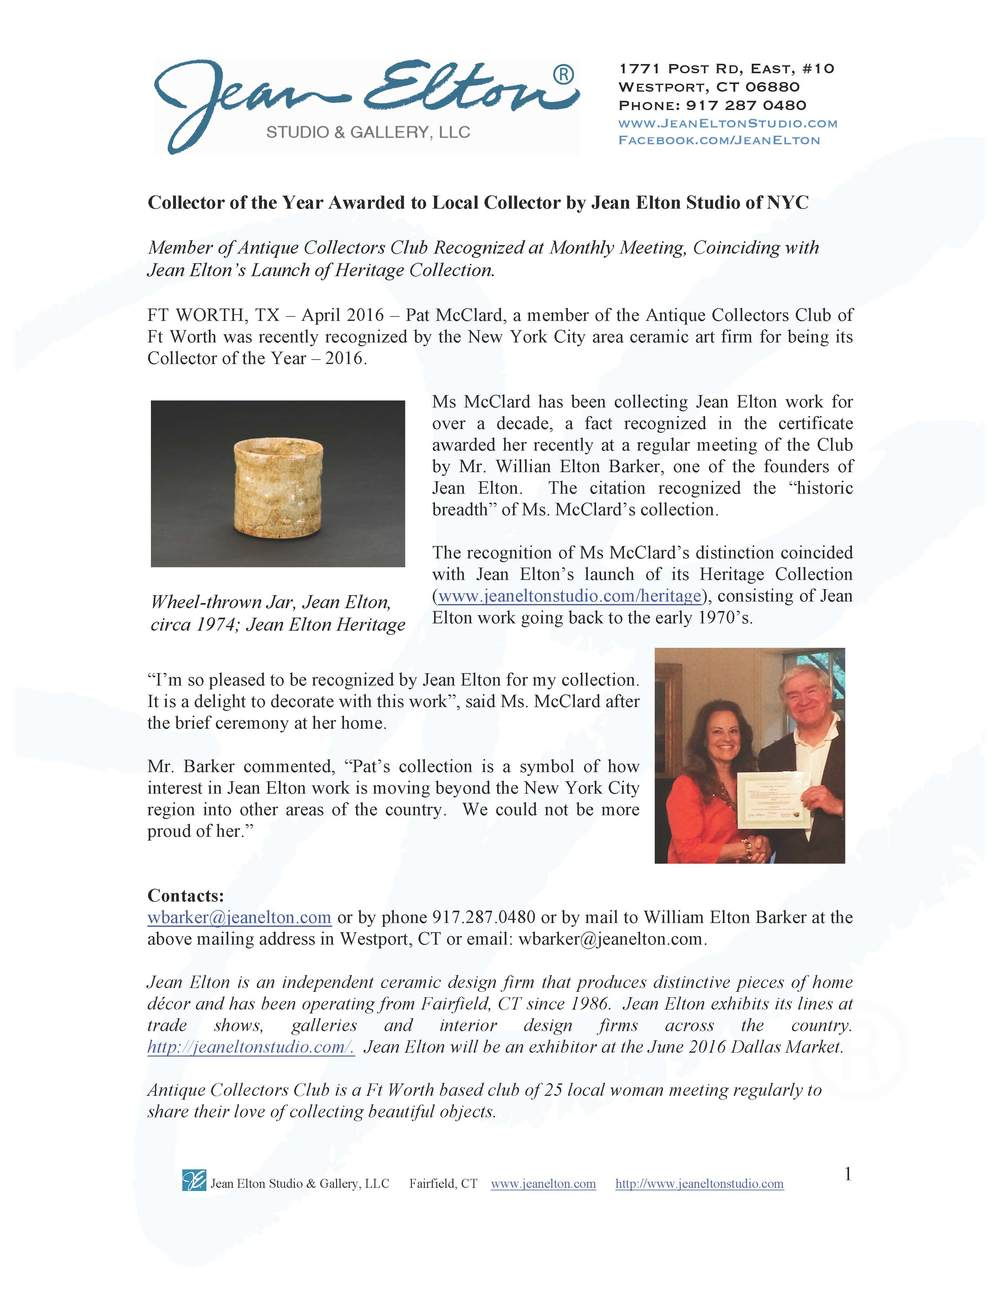 JeanElton_PressRelease_CollectorofYear2015 Final.jpeg